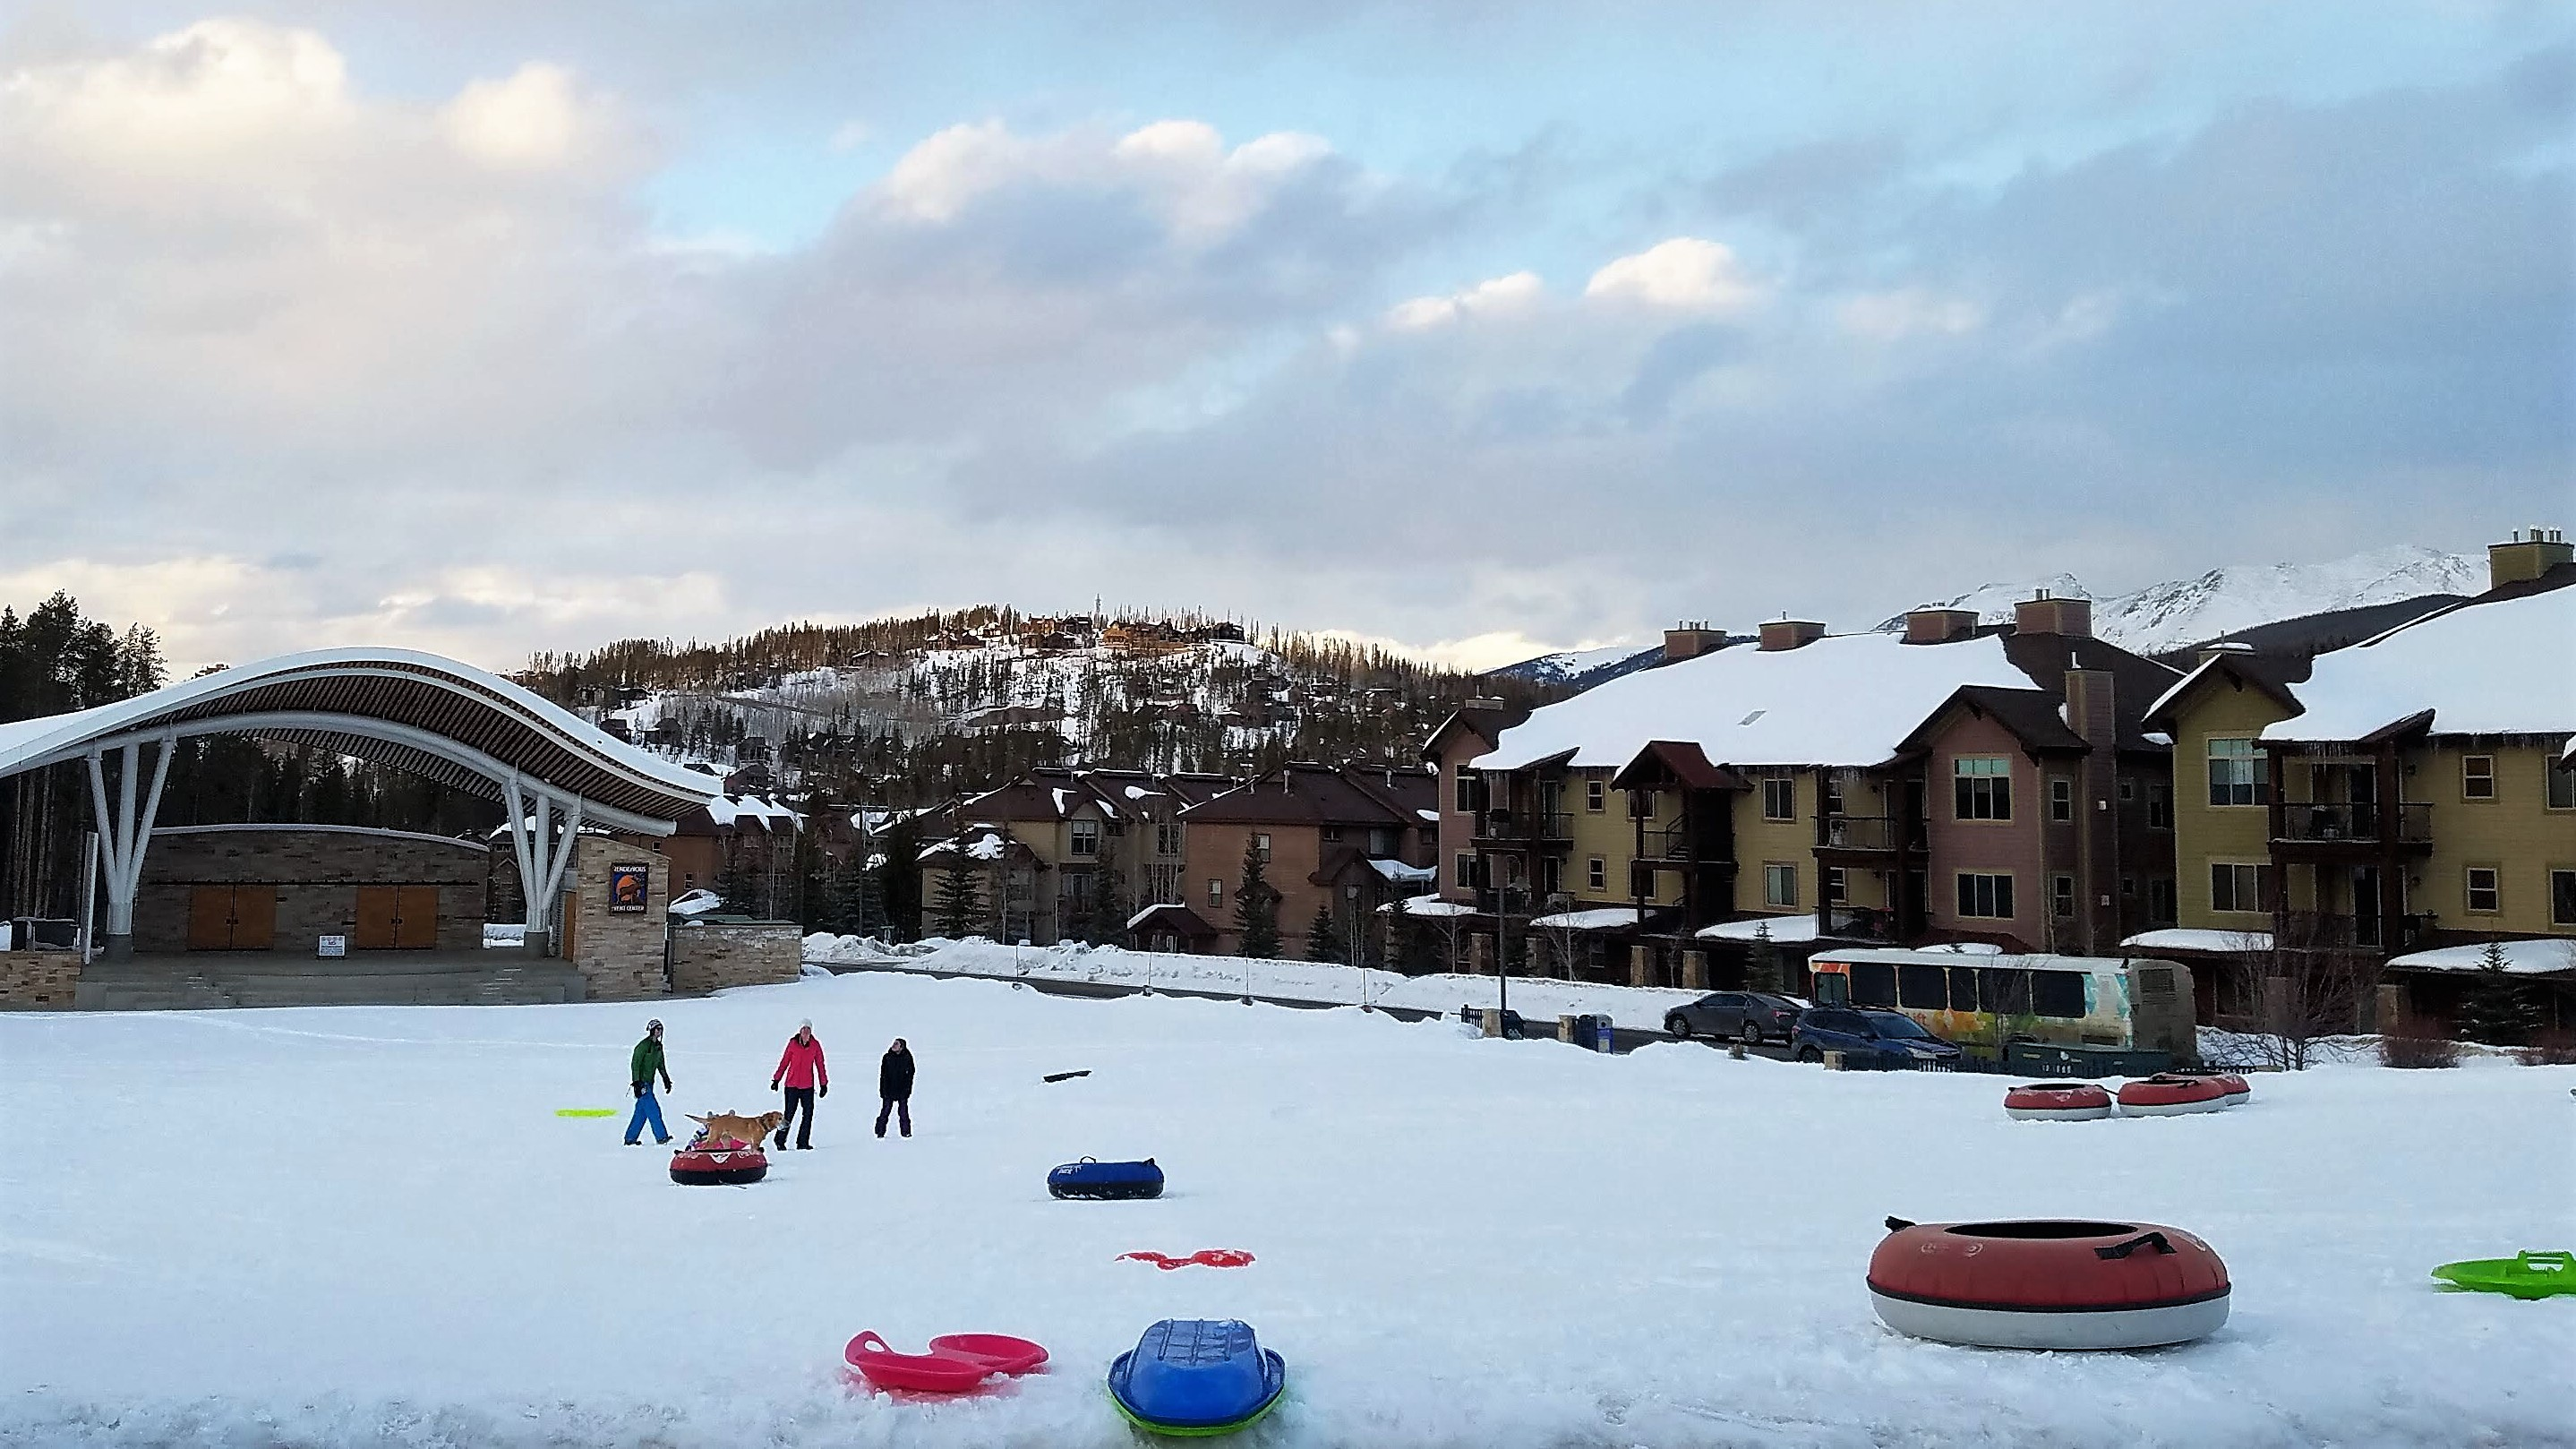 People playing in the snow with tall hotels in the background